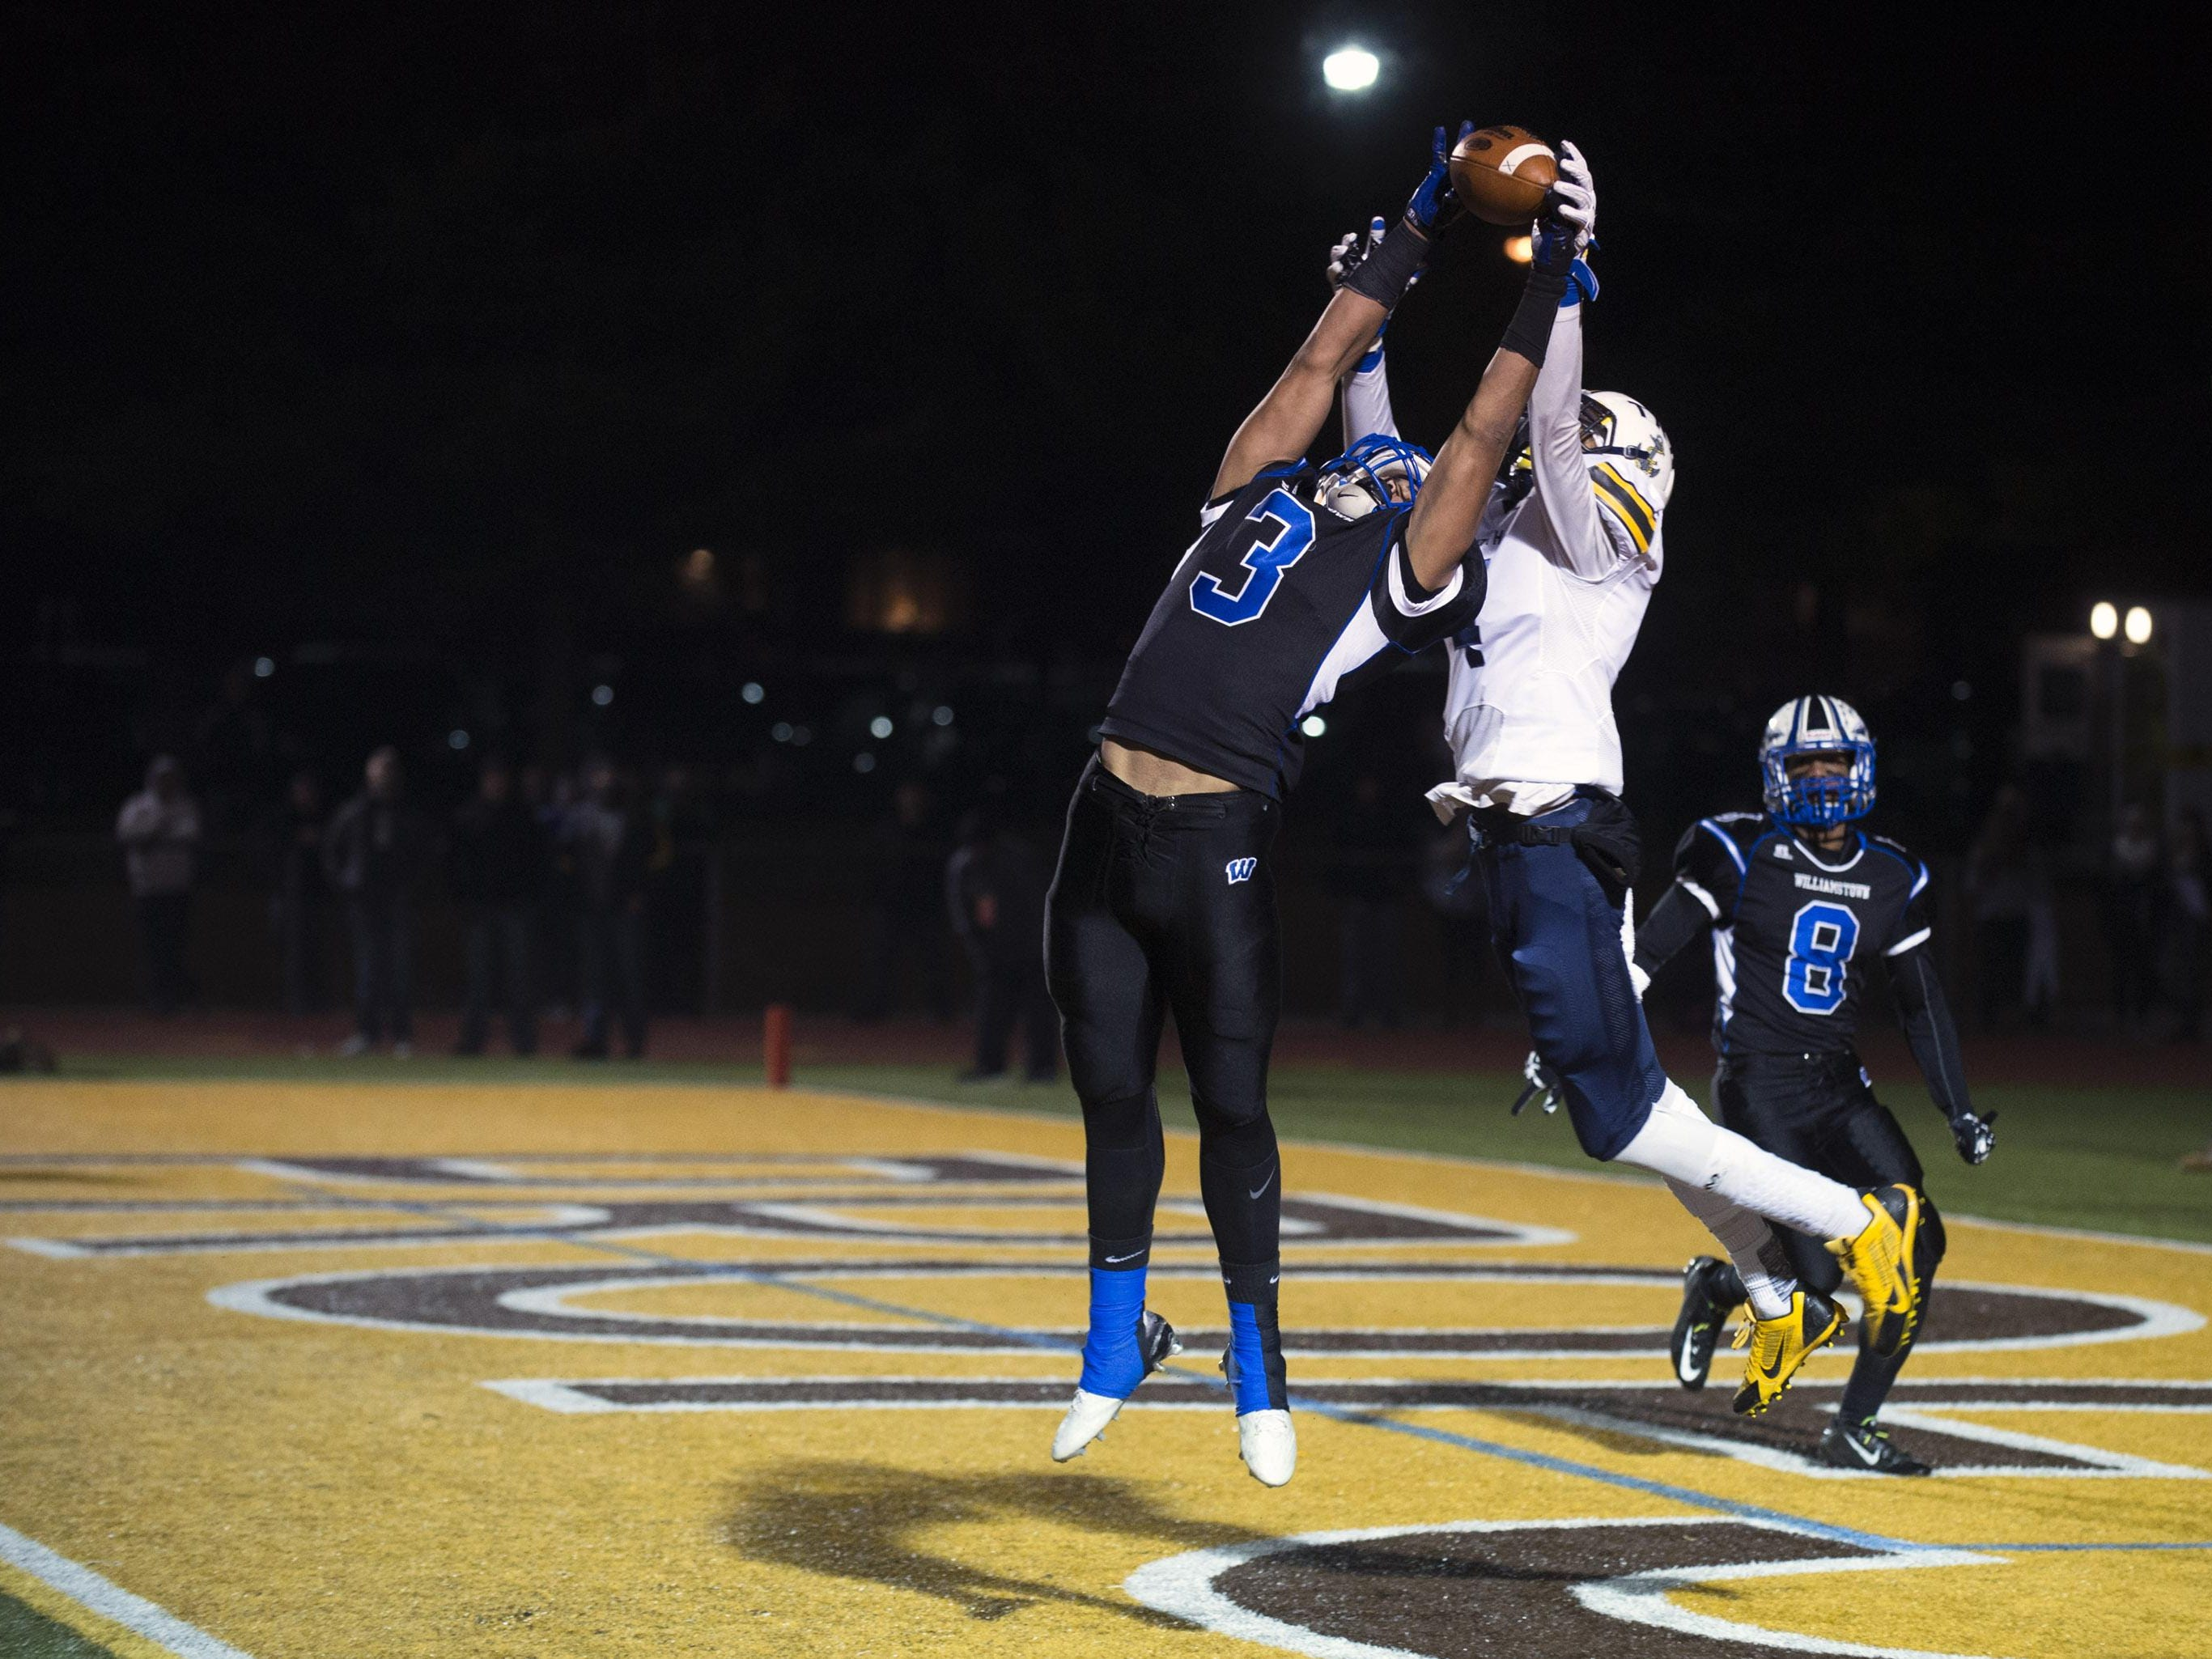 Williamstown's Eric Smith comes up with an interception against Toms River North Saturday, Dec. 5 at Rowan University in Glassboro. Toms River North won 14-7, claiming the South Jersey Group 5 title.